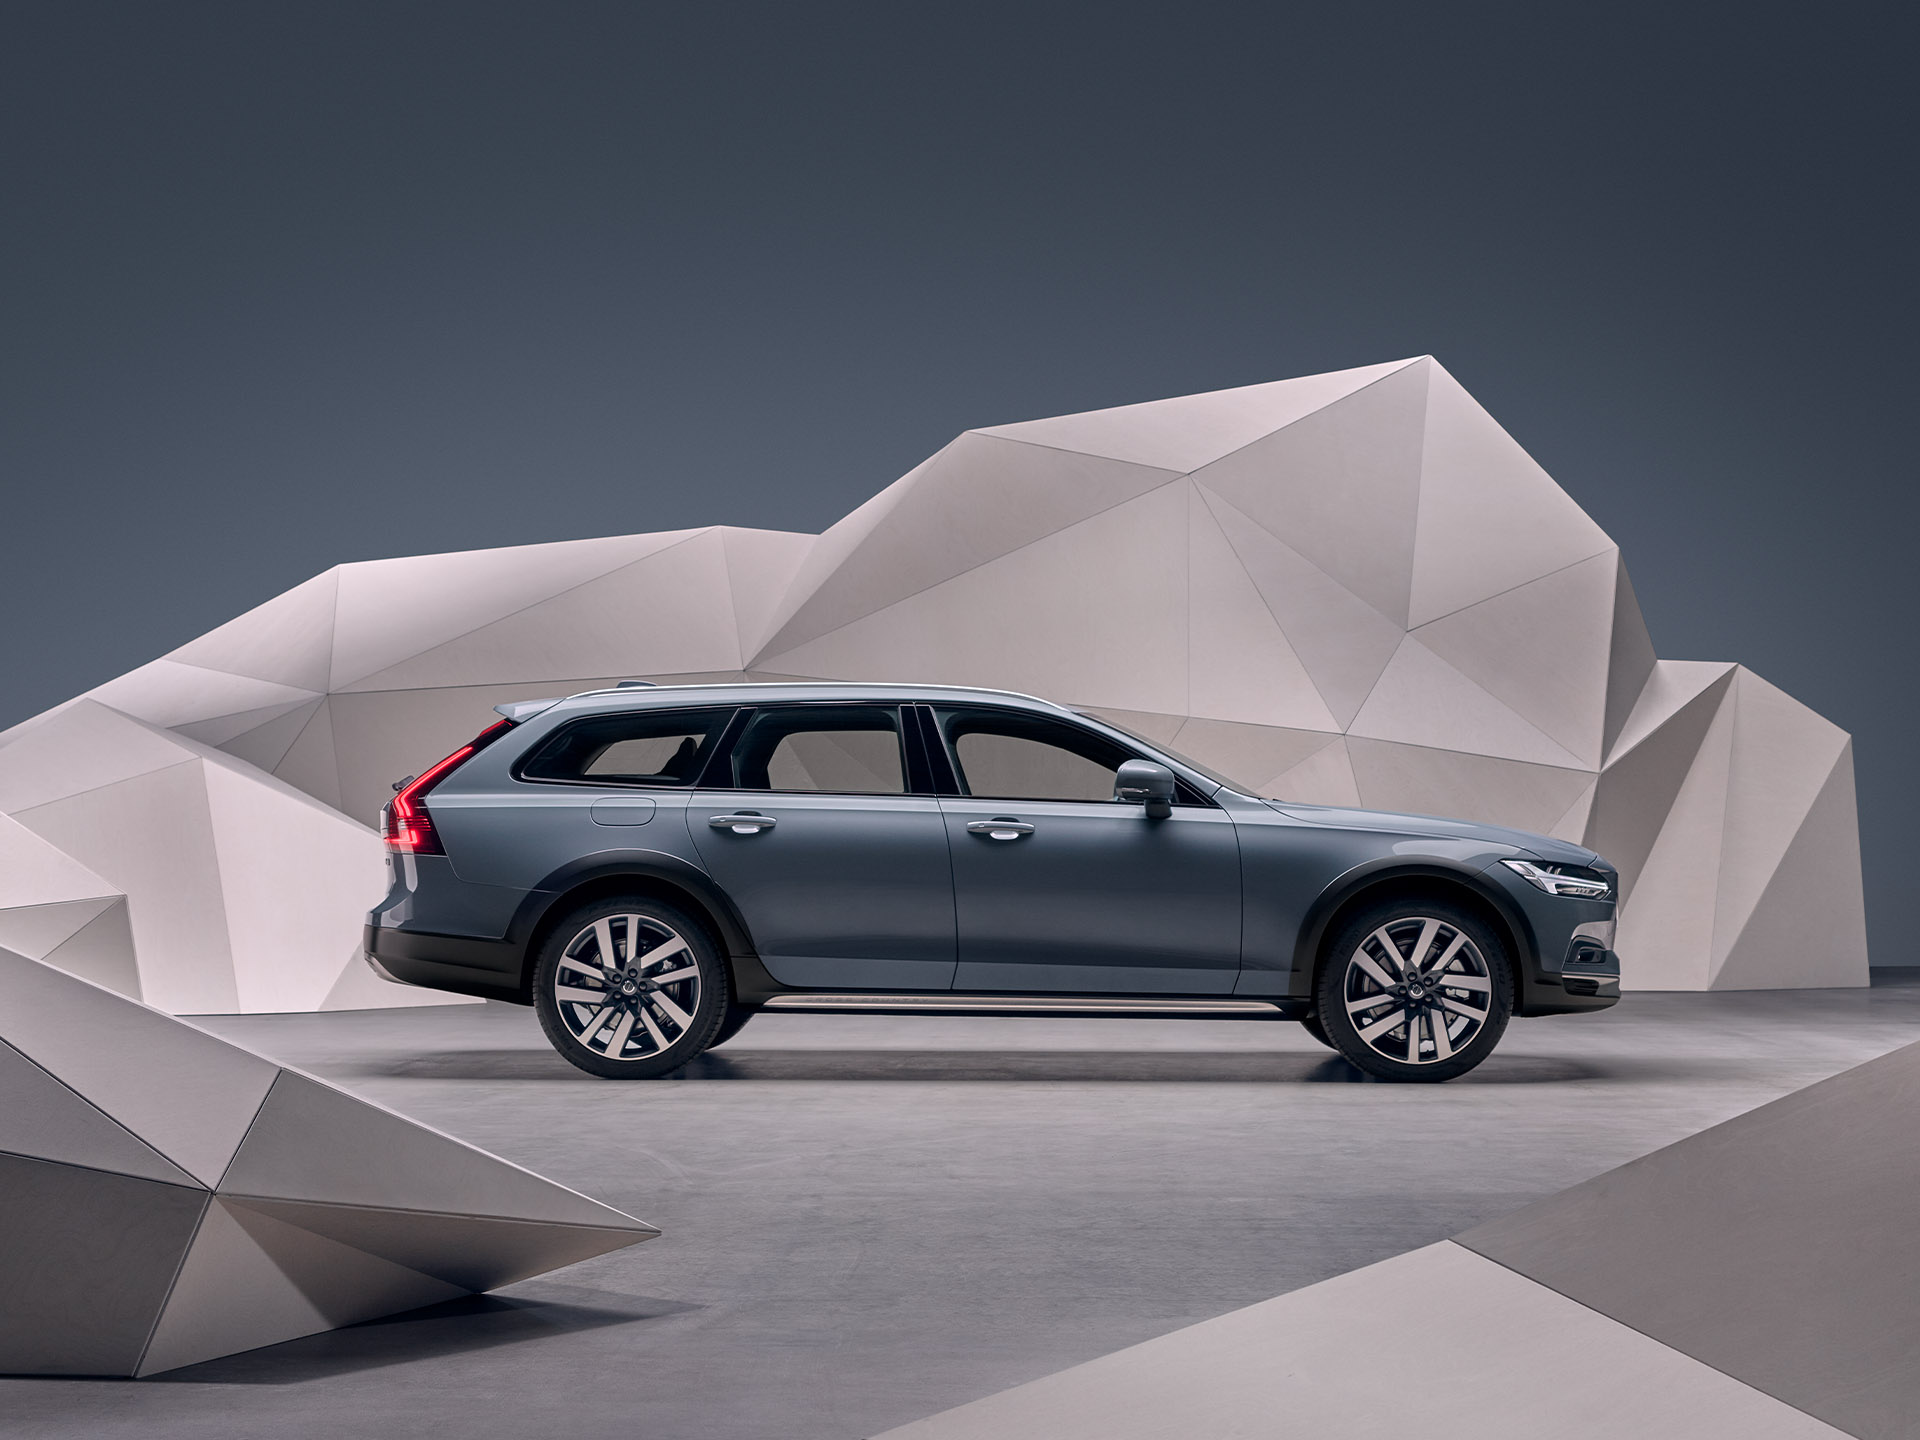 A mussel blue metallic Volvo Estate V90 standing in front of an artistic wall